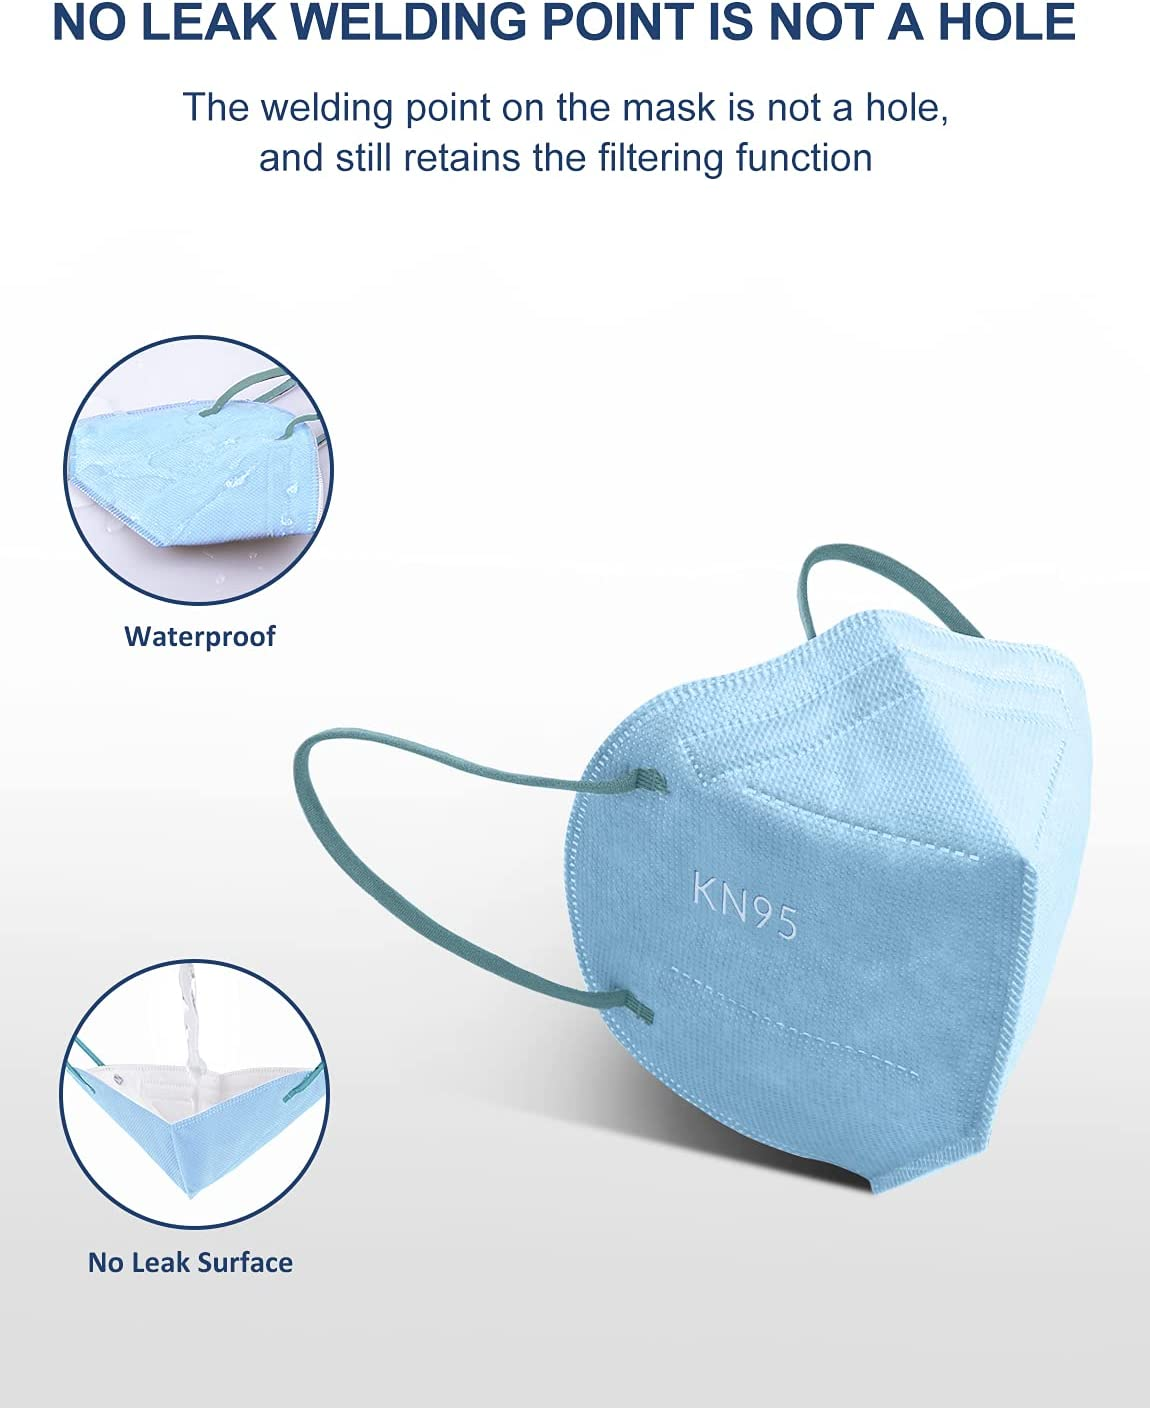 KN95 Face Mask 20 Packs, 5 Layer Safety Mask with Elastic Ear Loop and Nose Bridge Clip, Filter Efficiency≥95%, Protective Masks for Indoor and Outdoor Use (Blue Mask)